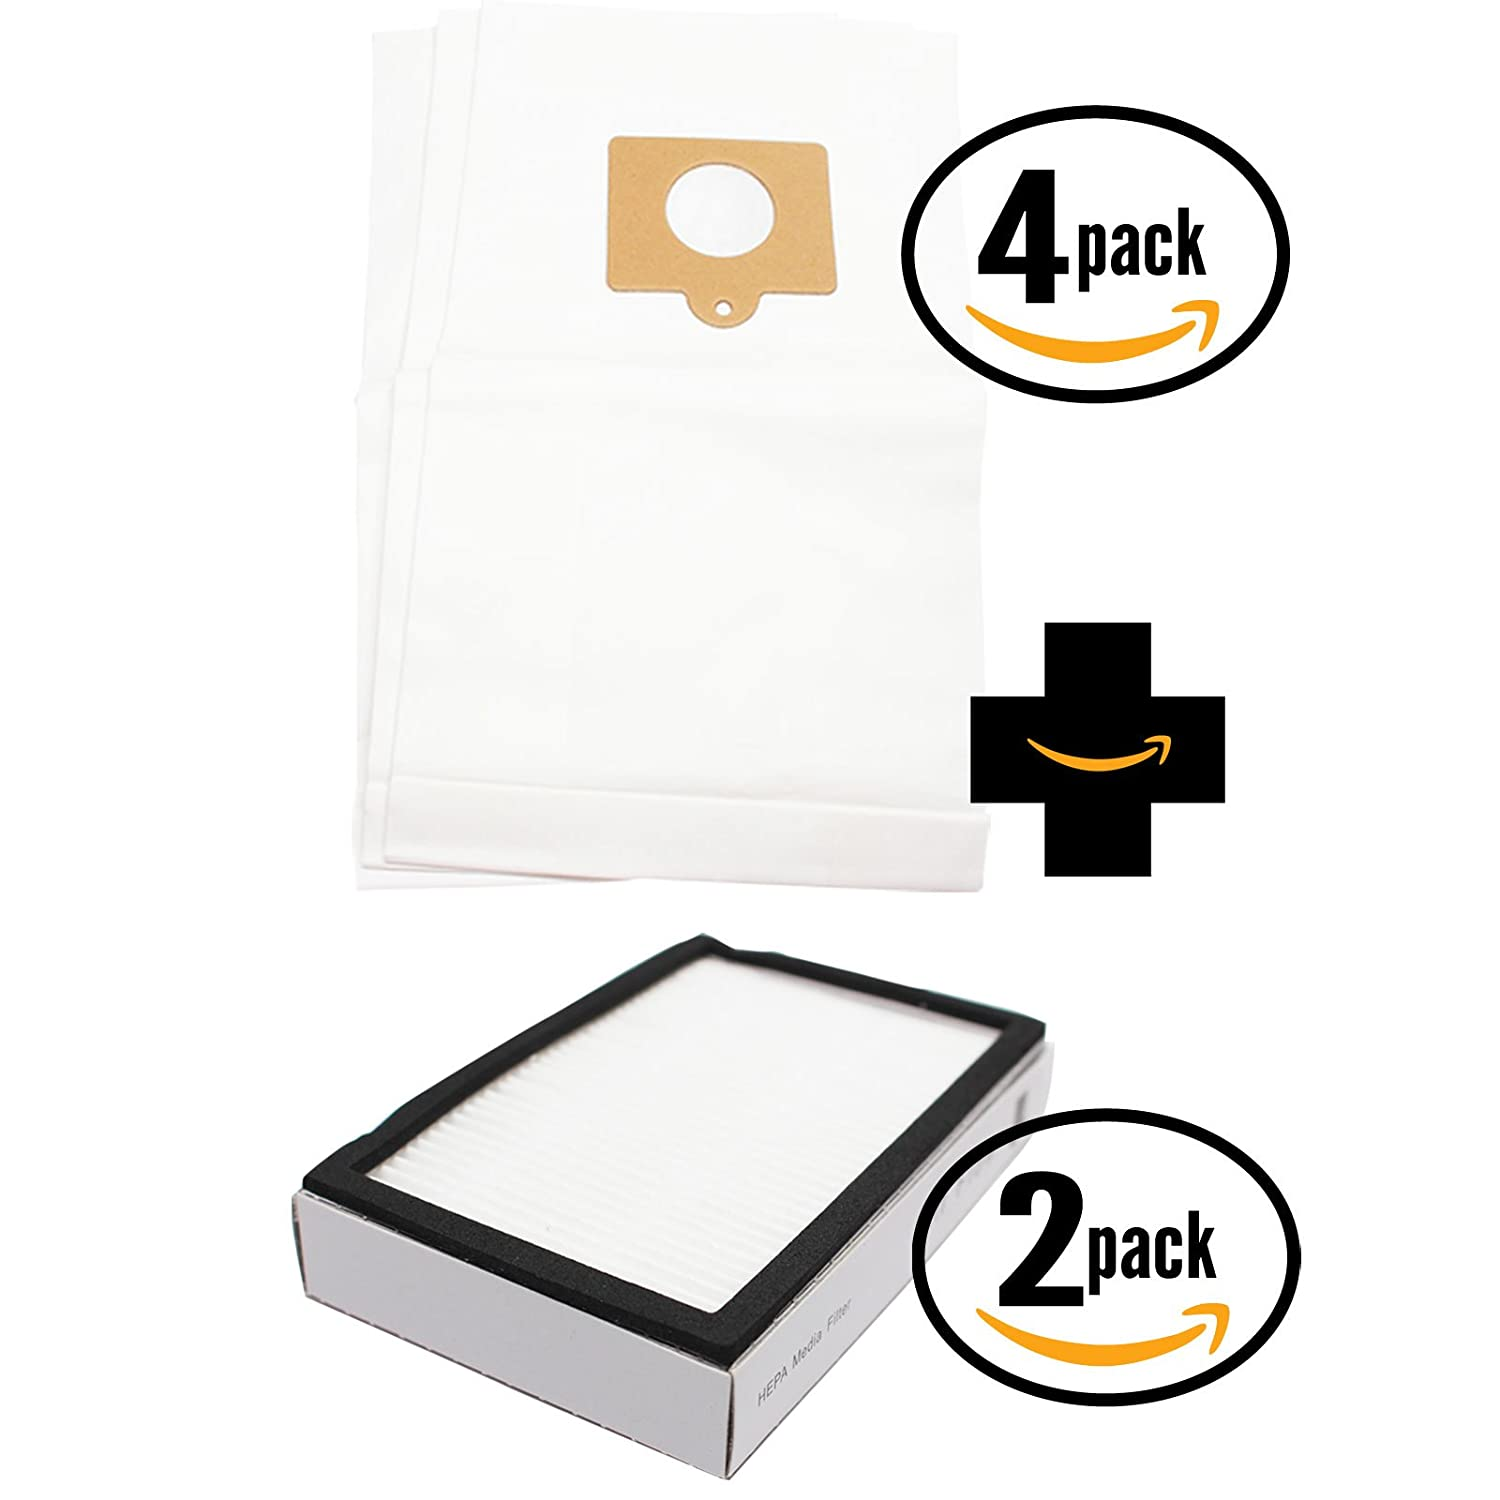 12 Replacement Panasonic MC-CG902-01 Vacuum Bags & 2 HEPA Filter - Compatible Panasonic C-5 Vacuum Bags & AC38KBRMZ000 Filter Upstart Battery